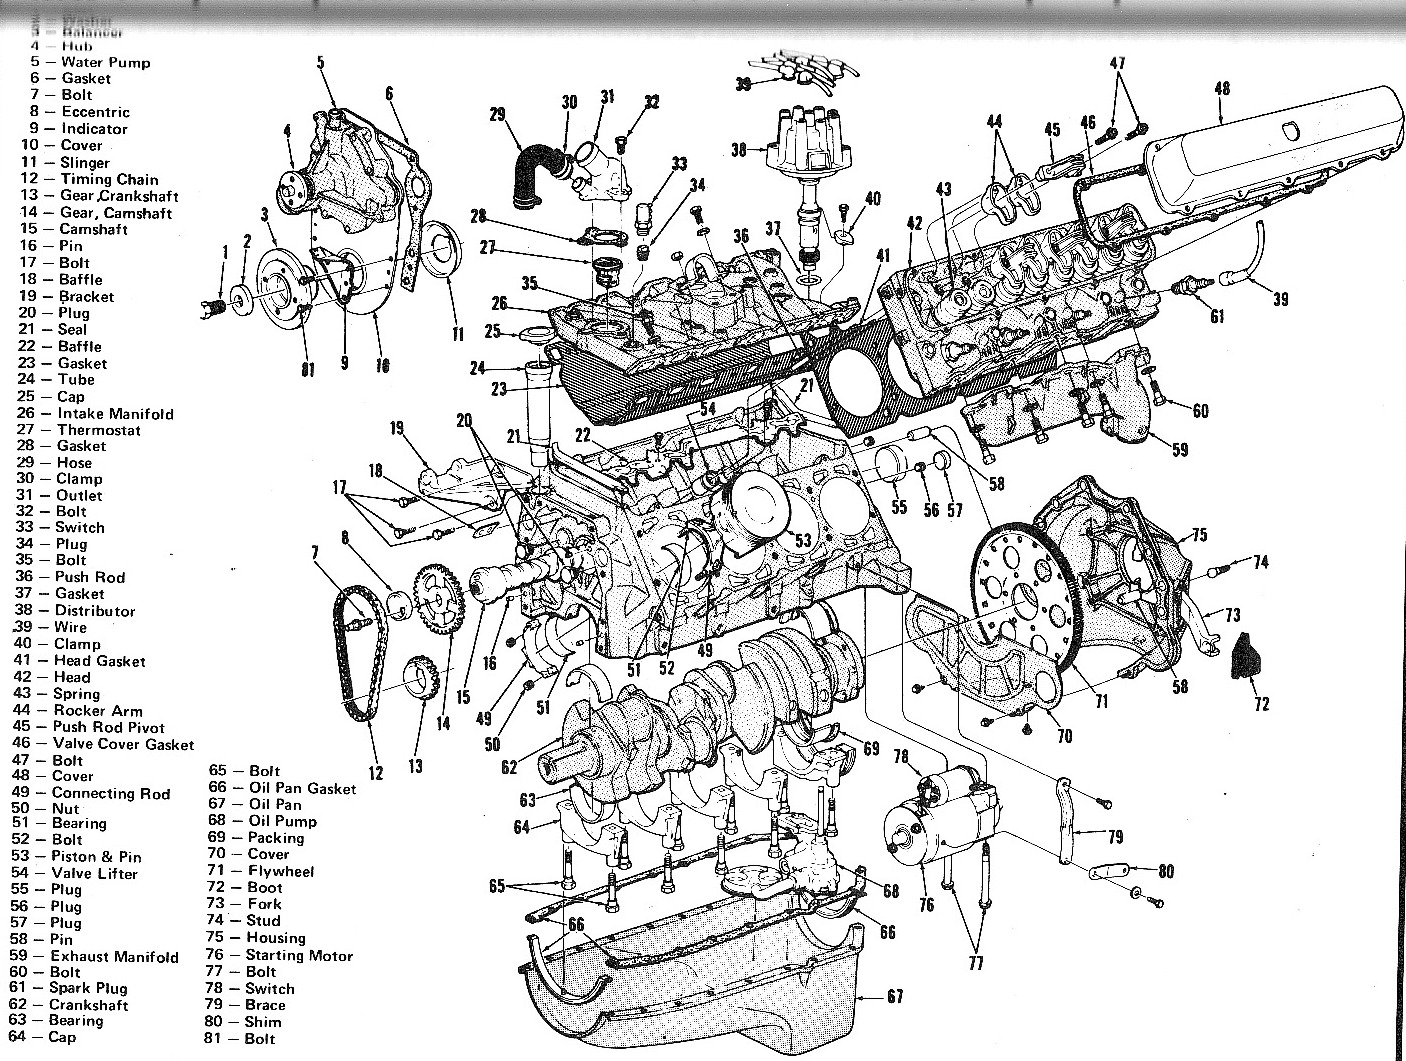 1971 1978 oldsmobile toronado engine diagram jpg  [ 1406 x 1061 Pixel ]